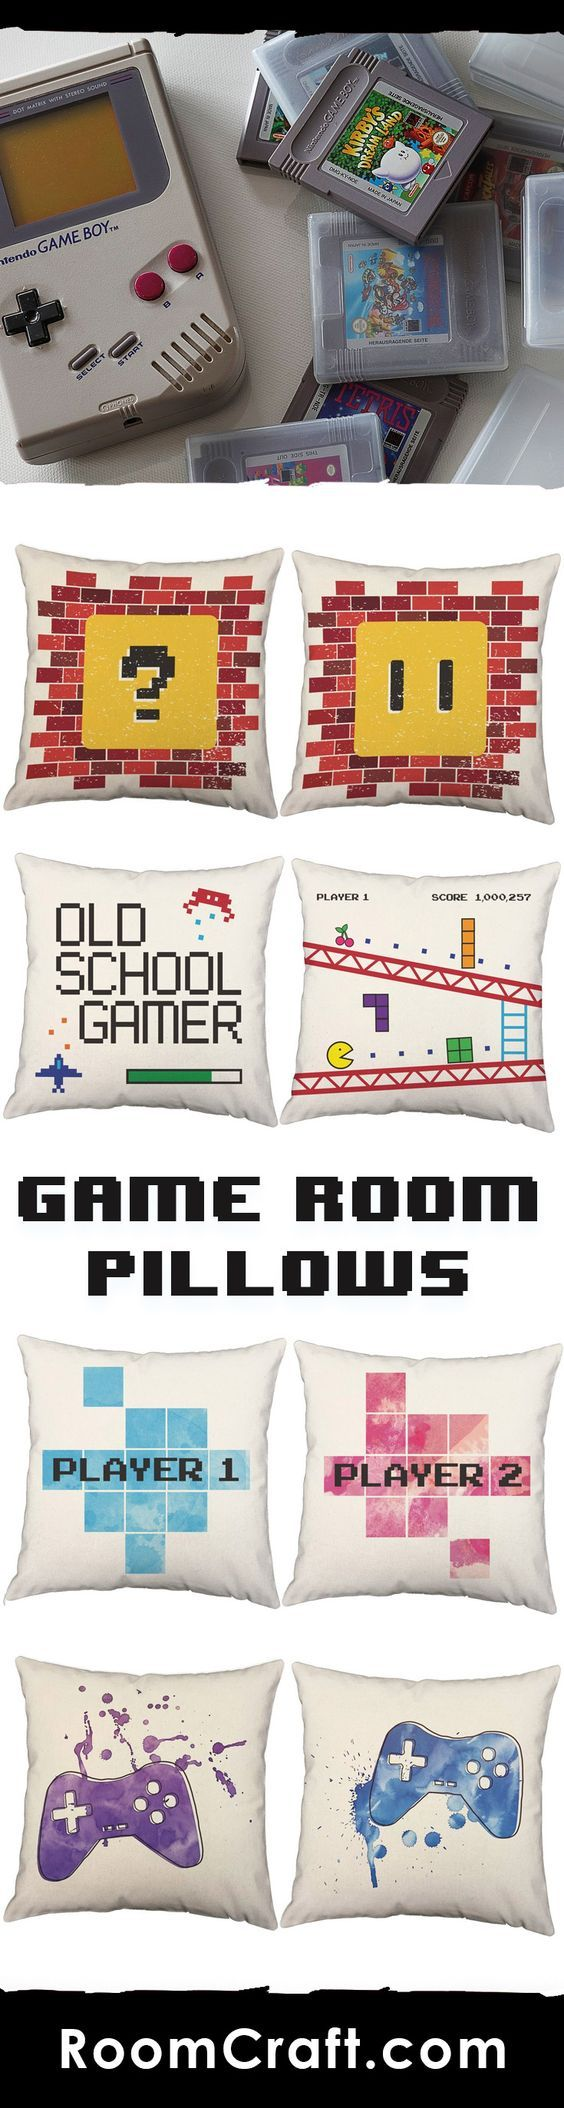 Whether you are catching them all or saving a princess, lean back and get comfortable with these gaming throw pillows. Each design is offered in multiple fabrics, colors, and sizes making them the perfect addition to any bedroom, game room, or man cave. Our quality gamer pillow covers are made to order in the USA and feature 3 wooden buttons on the back for closure. Choose your favorite and create a truly unique pillow set. #roomcraft